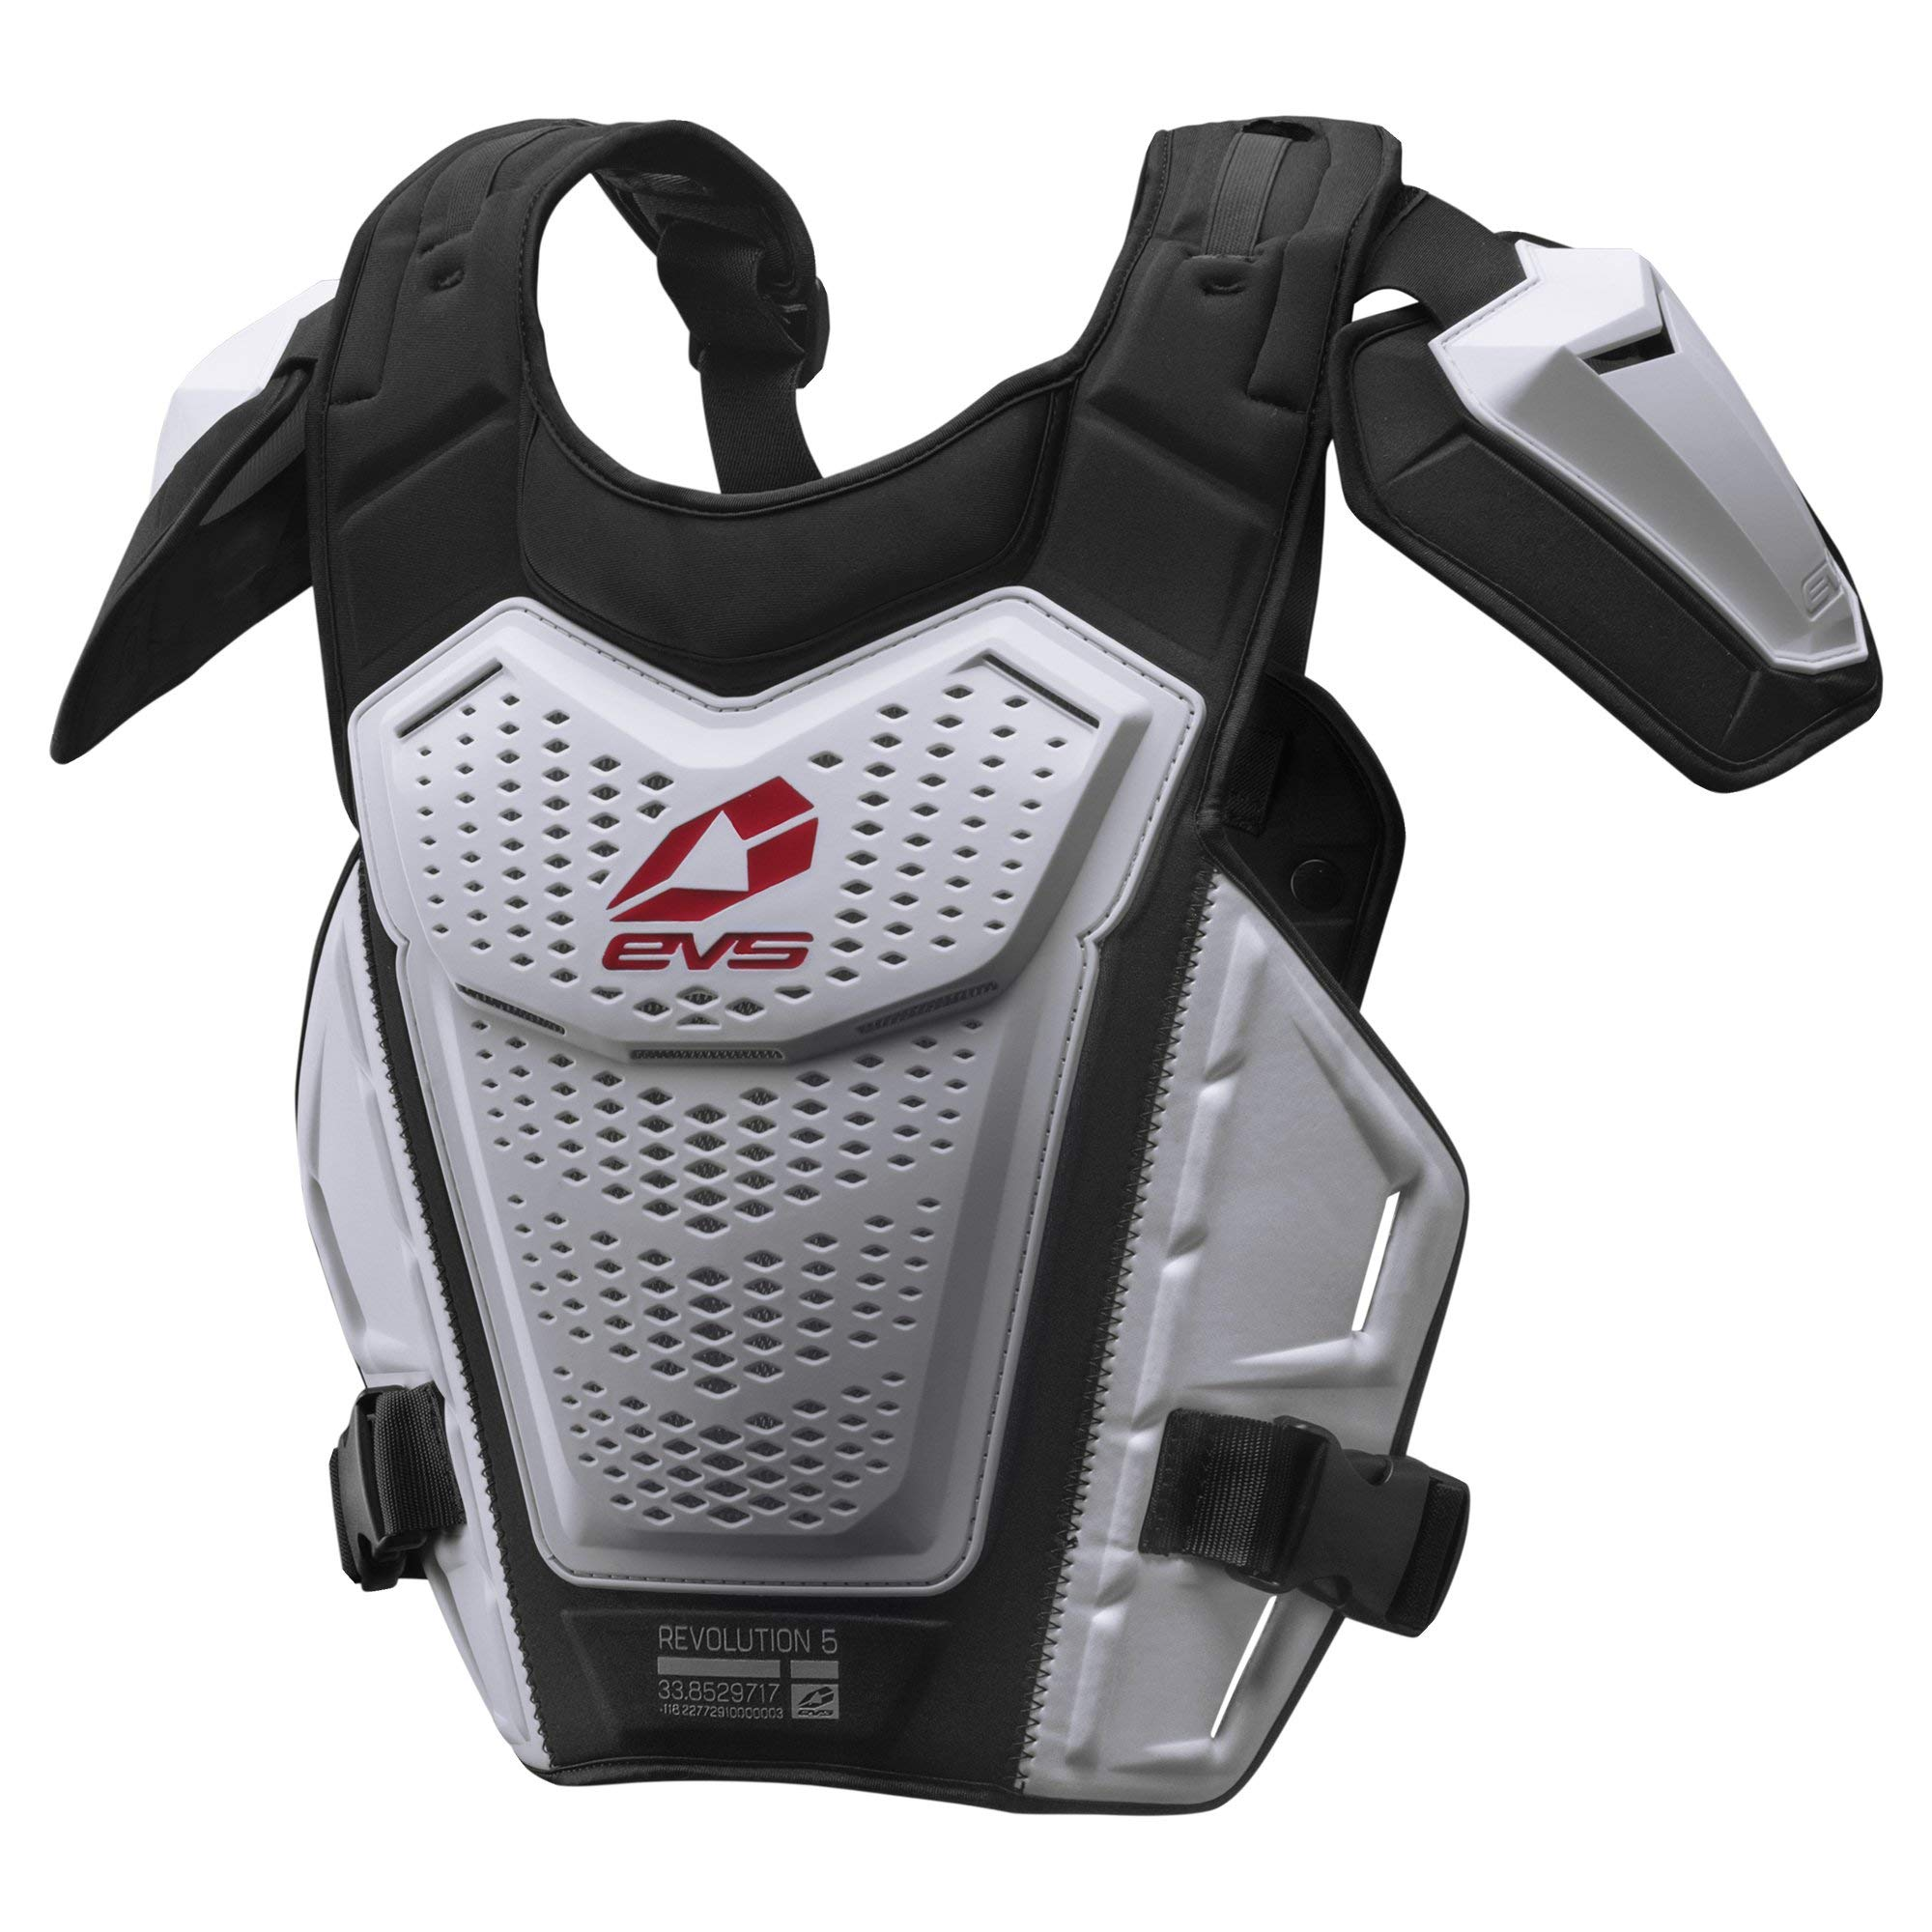 EVS Sports Men's Roost Deflector (REVO 5) (White, Adult (L/XL)) by EVS Sports